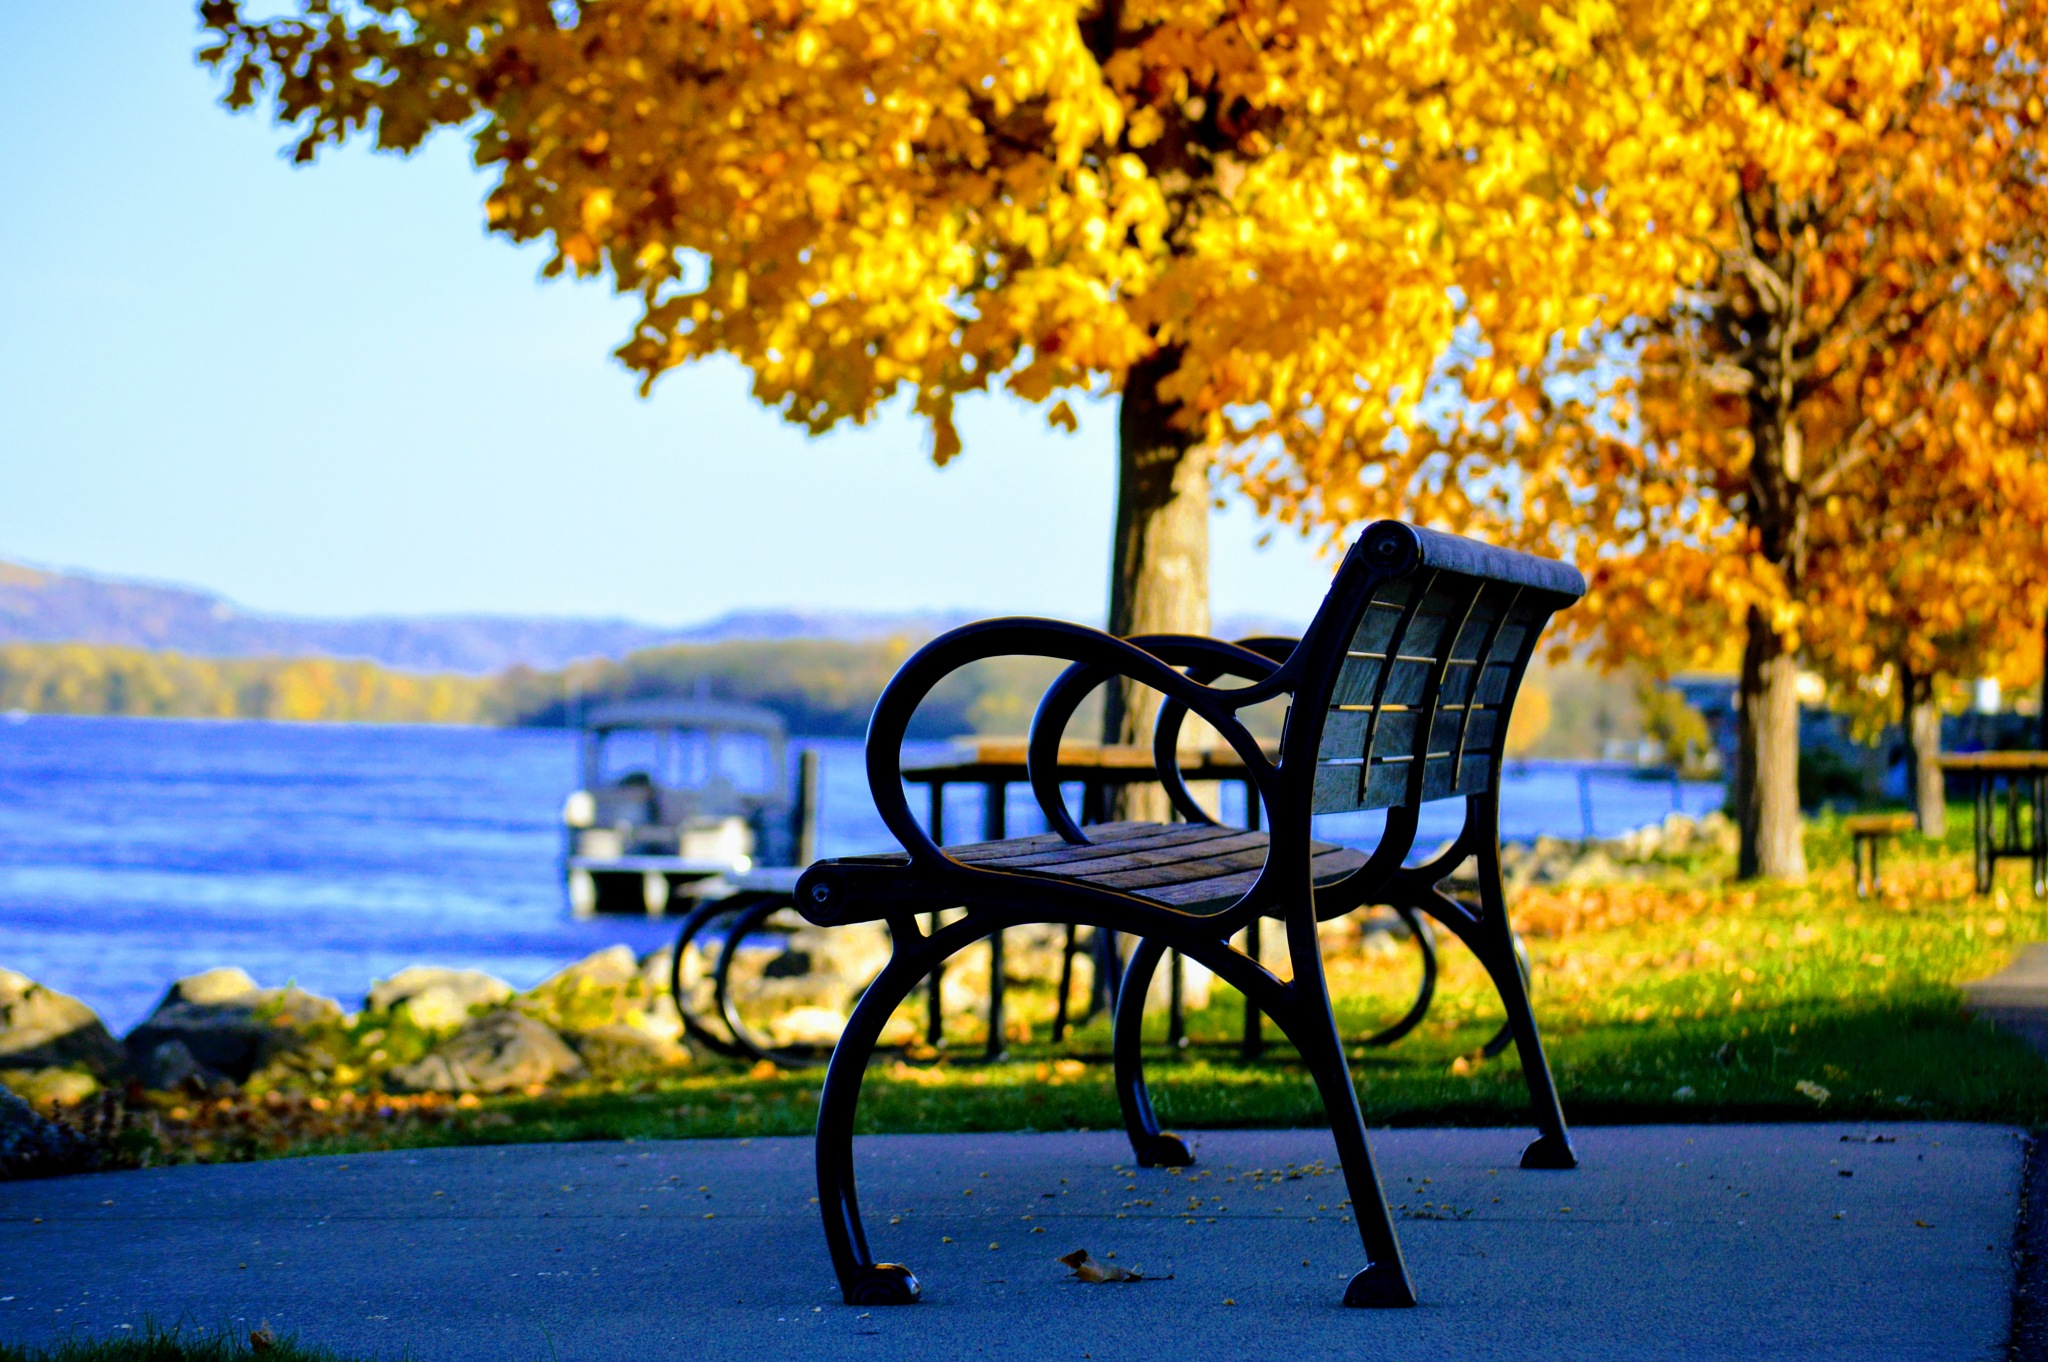 Bench on the Mississippi River at Wabasha, MN by drcarlosesparza